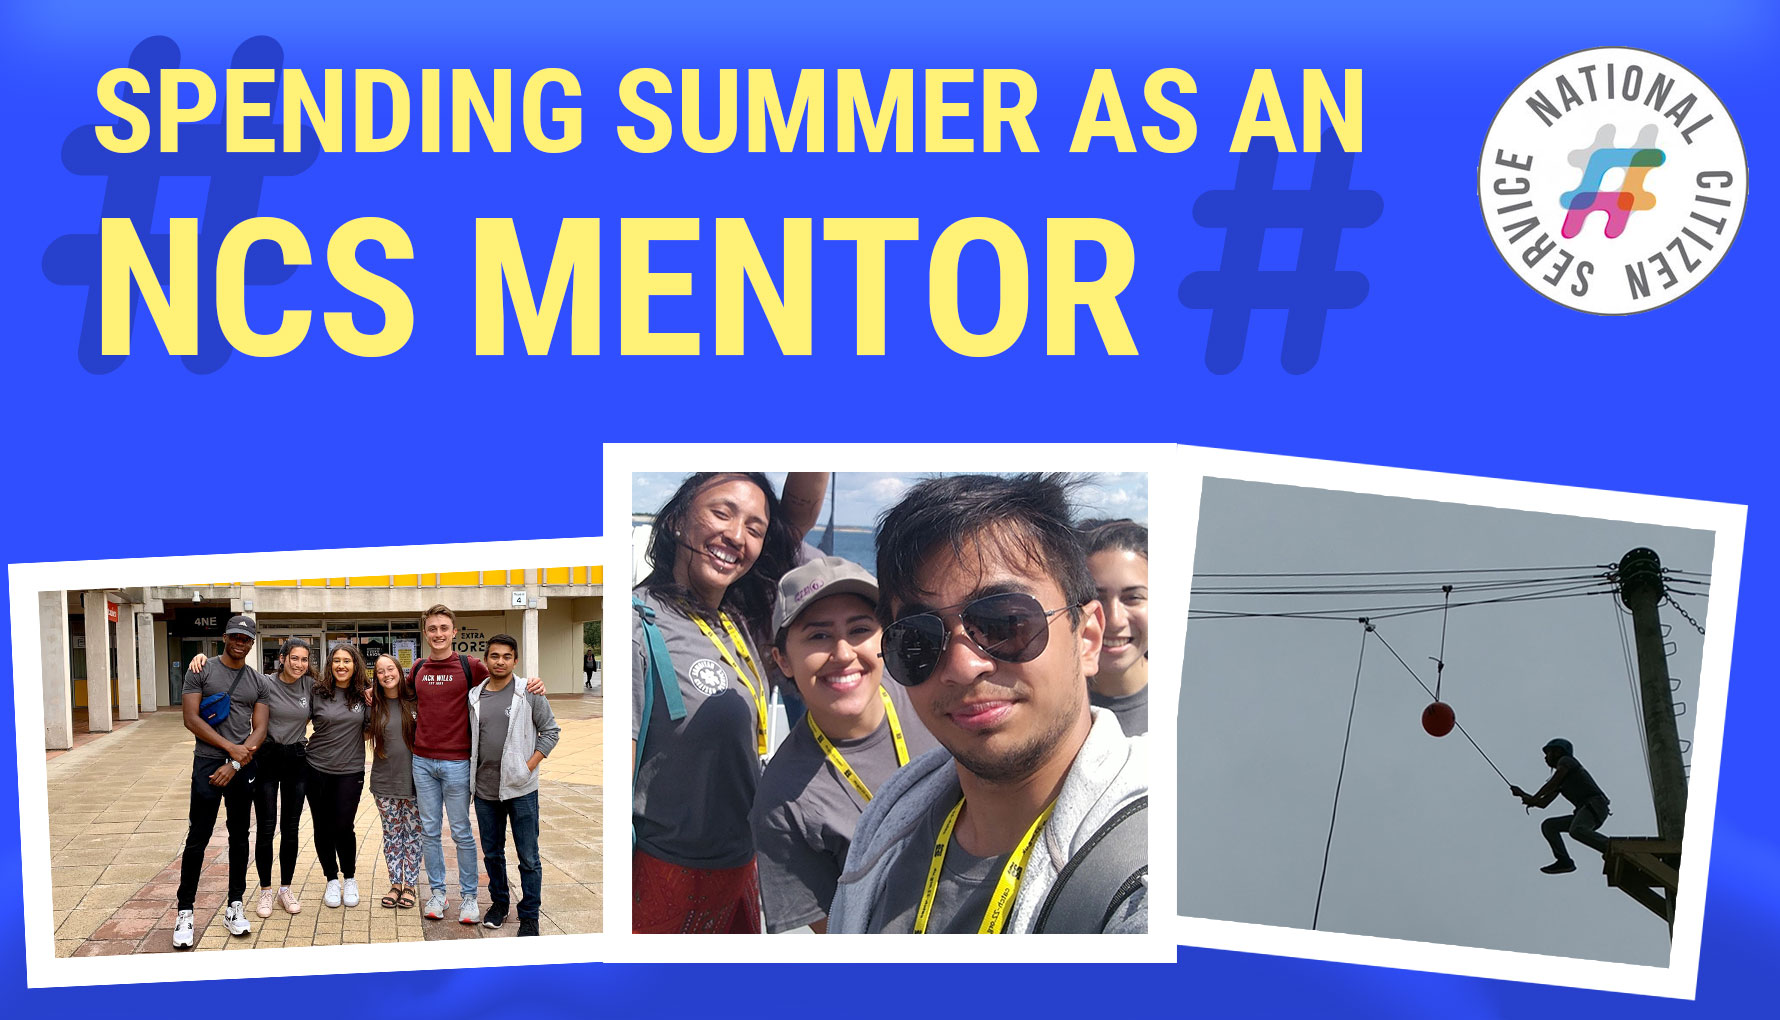 Spending Summer as an NCS Mentor